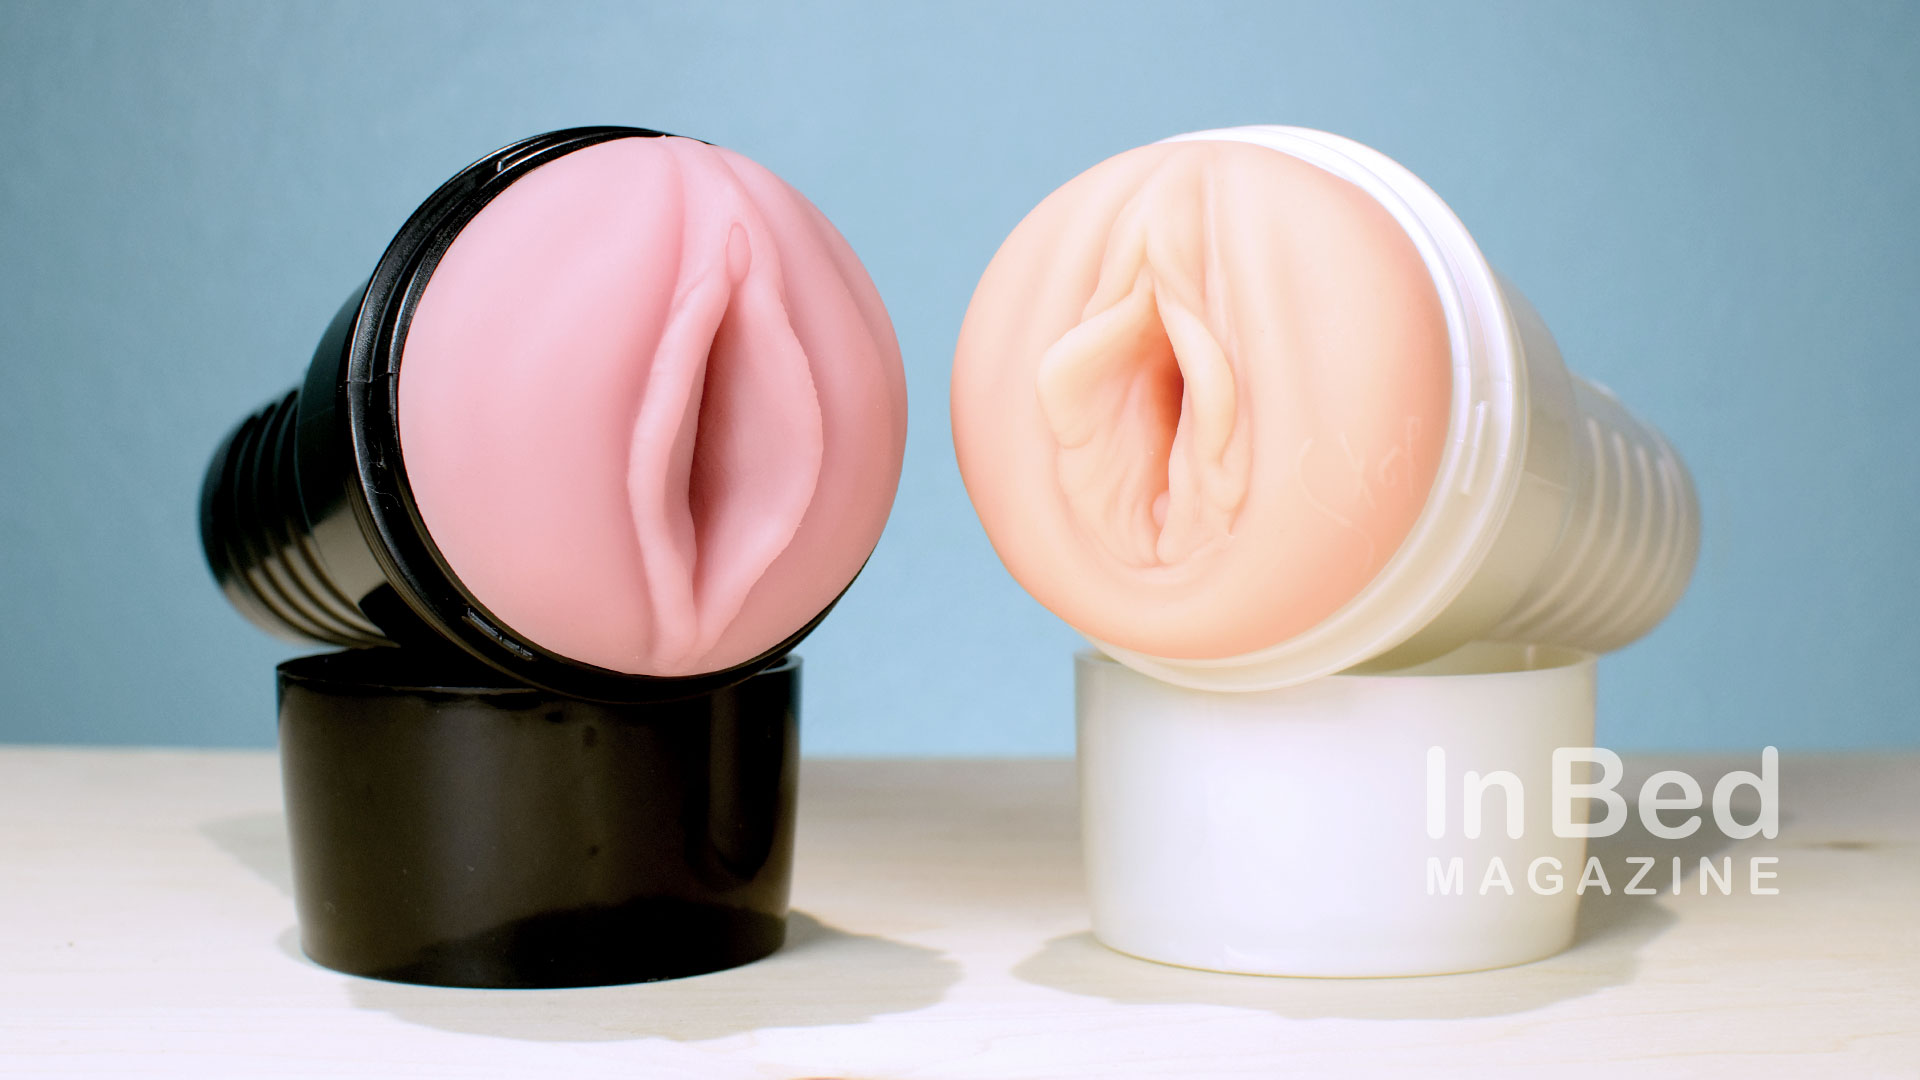 Buy Fleshlight How Much Price